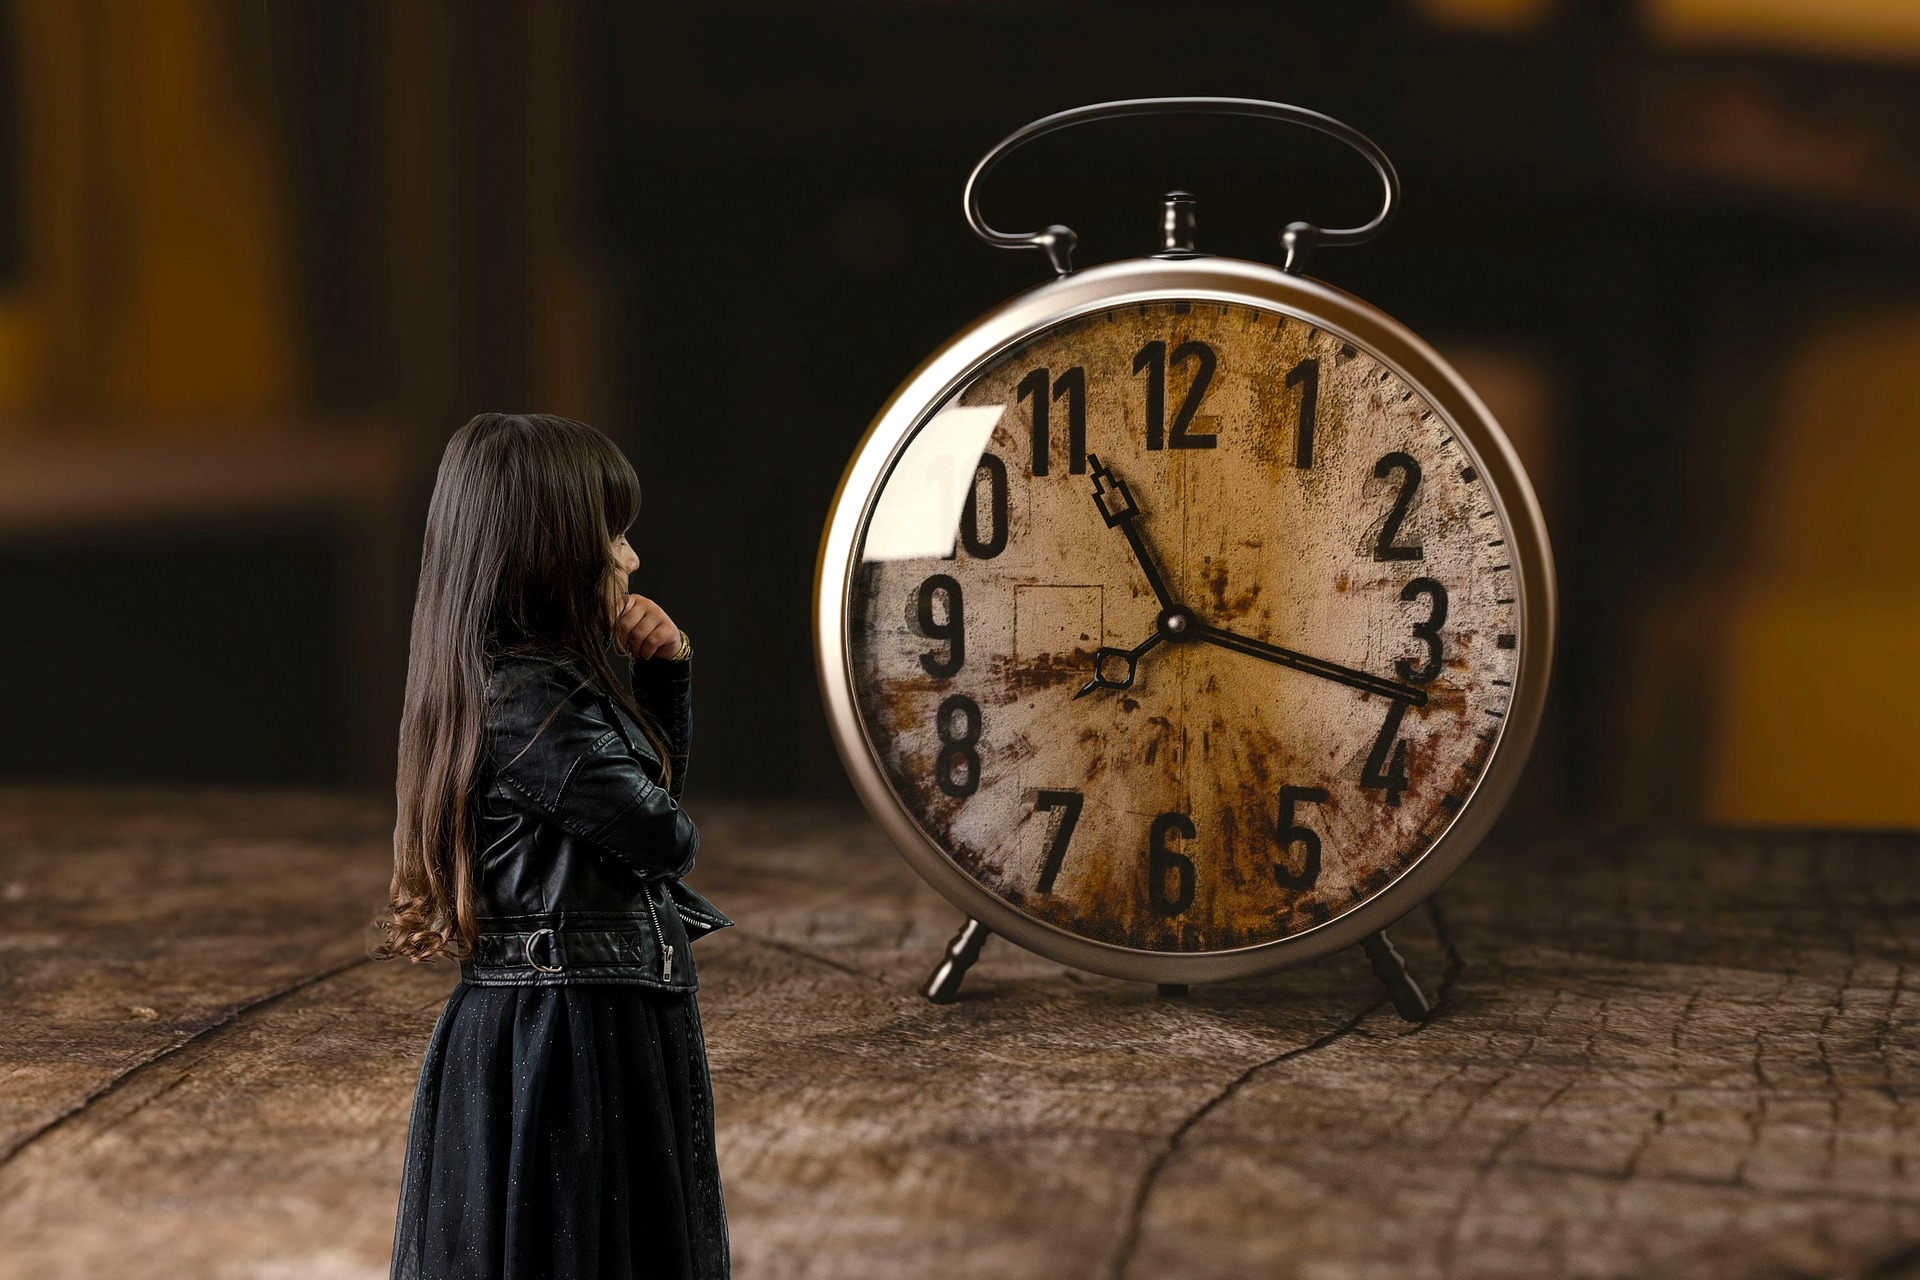 Small girl in black standing in front of a large alarm clock.